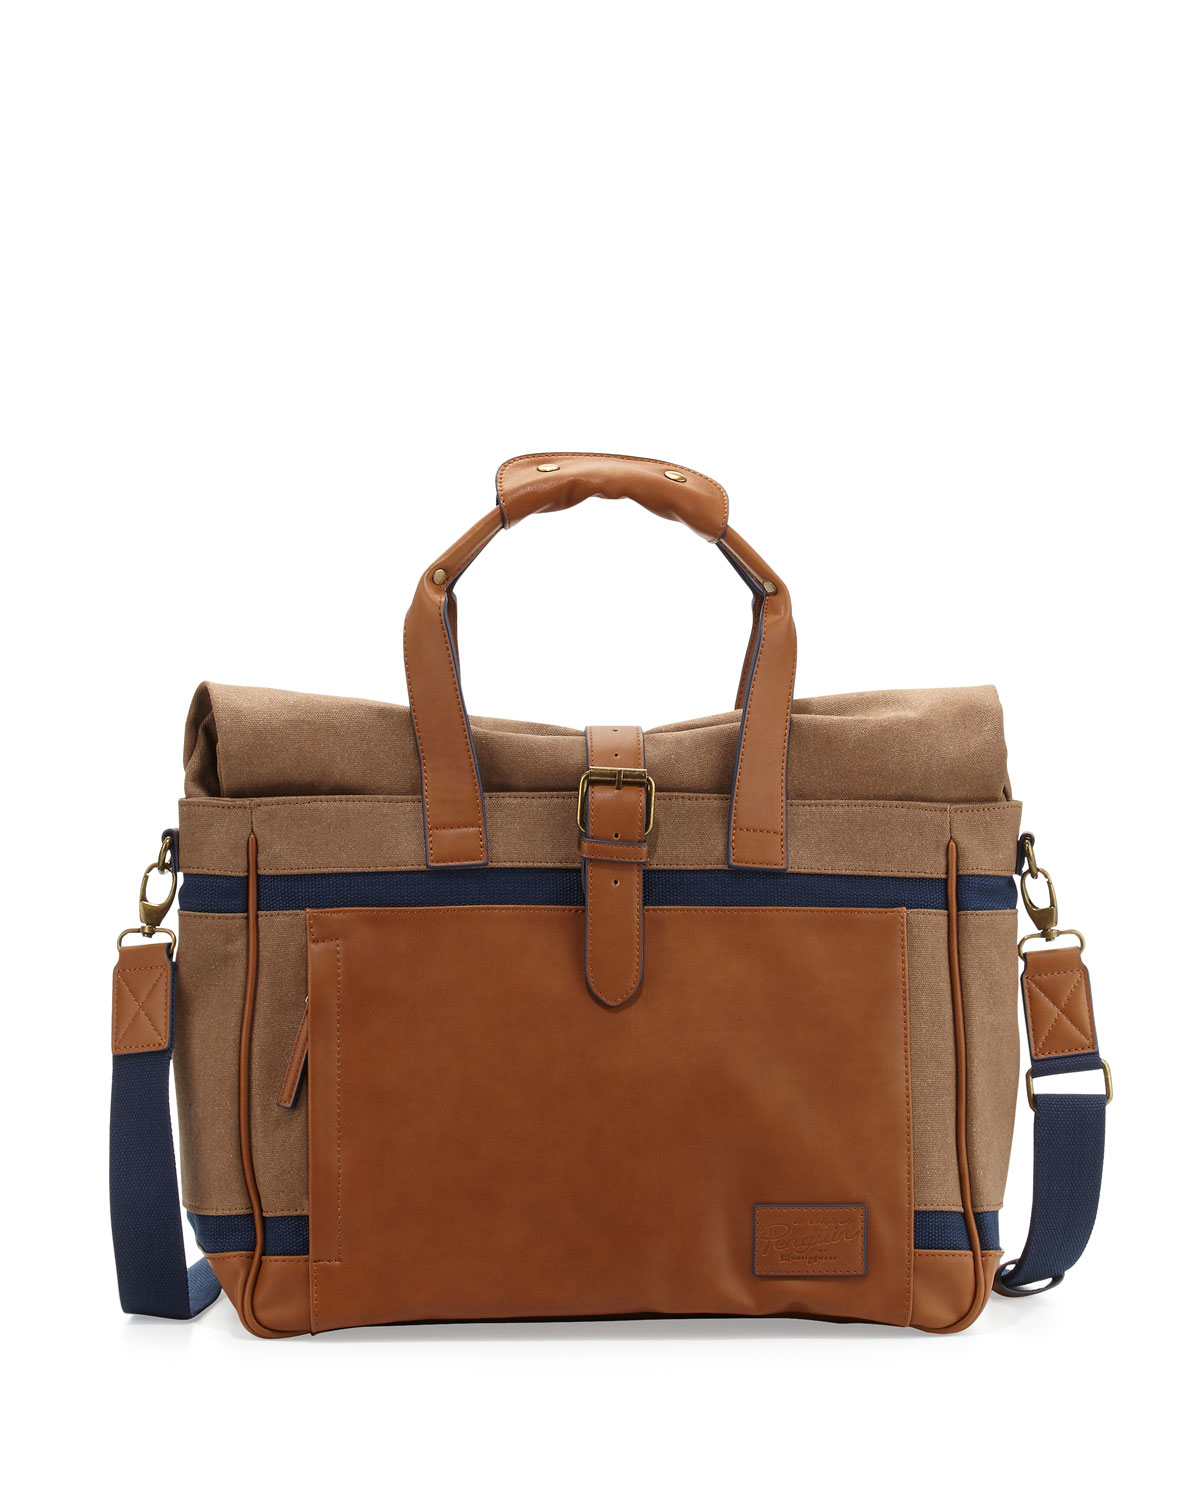 So, we've endeavored to make your search a little bit better and put together this list of the most worthwhile weekender and duffel bags for men on the market today. B.A.D. Duffel # SP The folks at B.A.D. (which stands for Best American Duffel) have created this fairly basic, yet still very capable duffel bag for an extremely reasonable price.